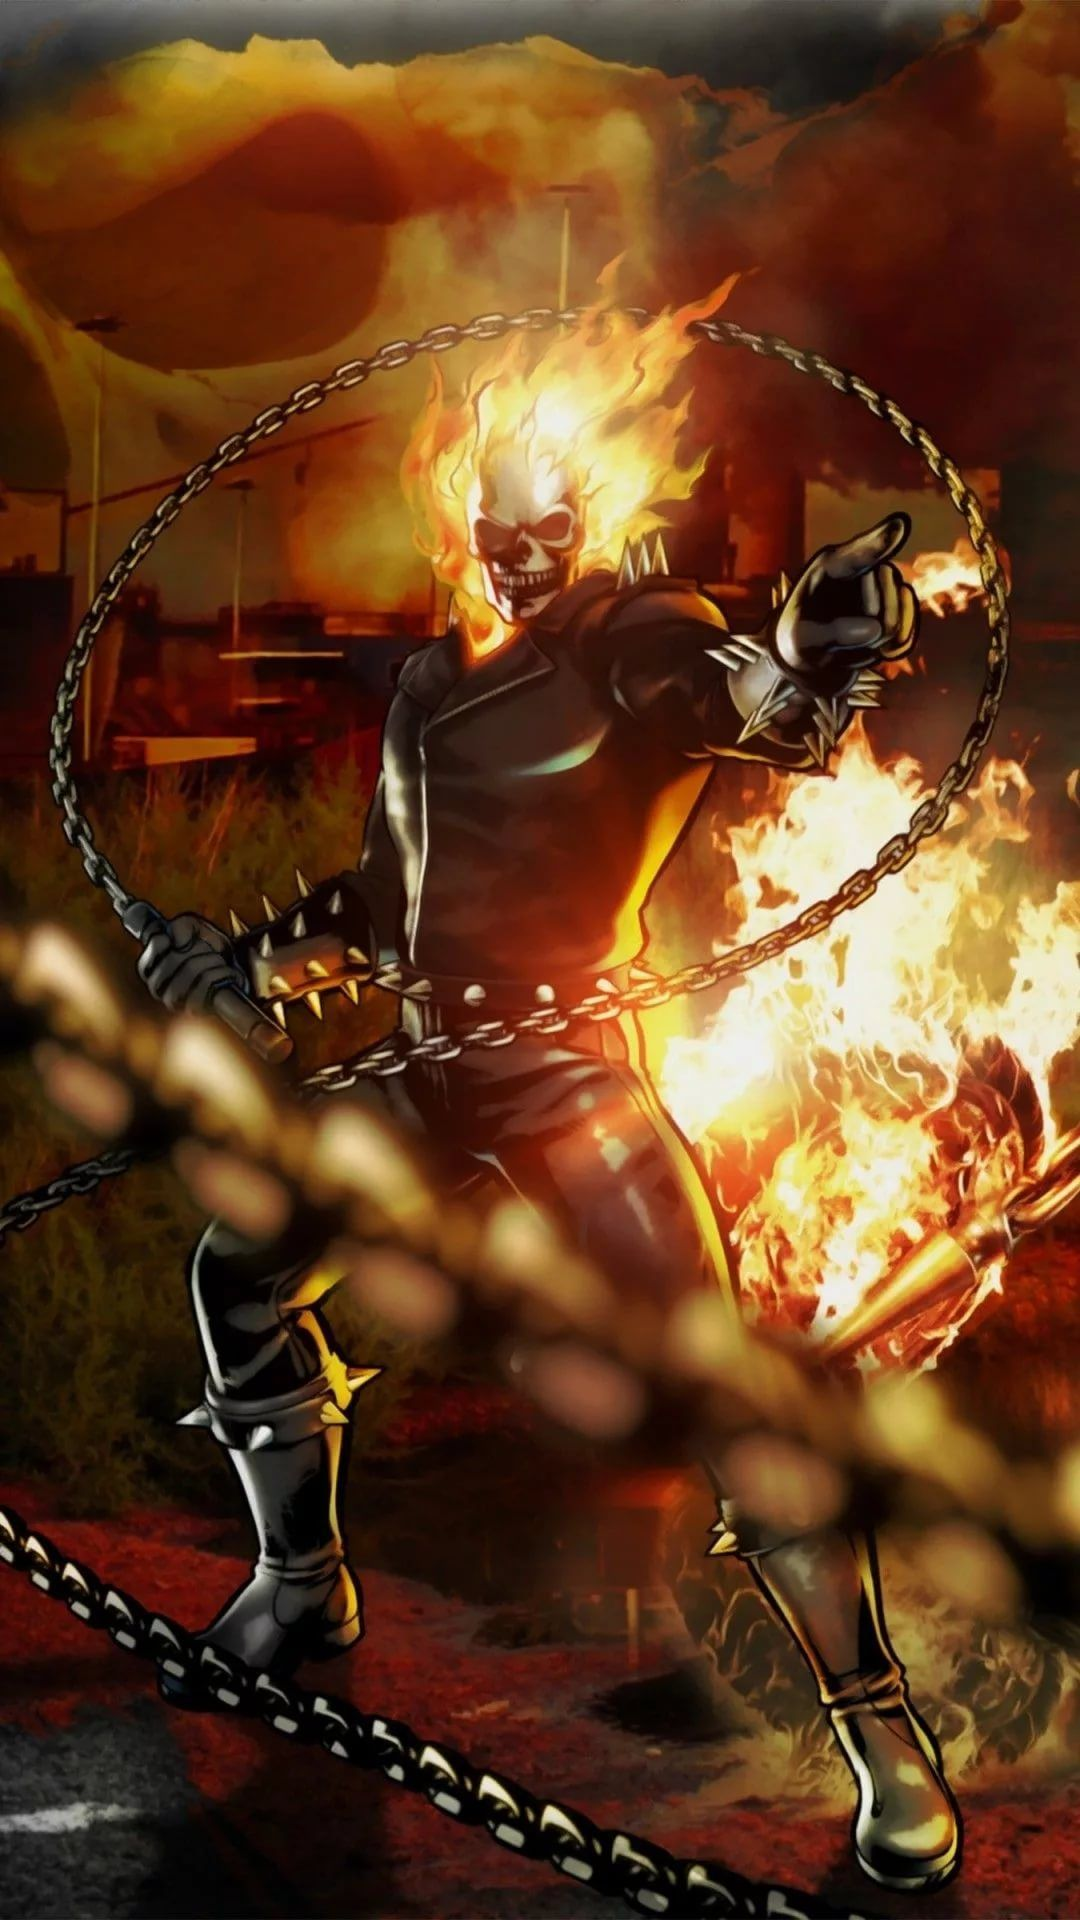 Cool Flash Wallpaper Android Ghost Rider Wallpaper Ghost Rider Pictures Ghost Rider